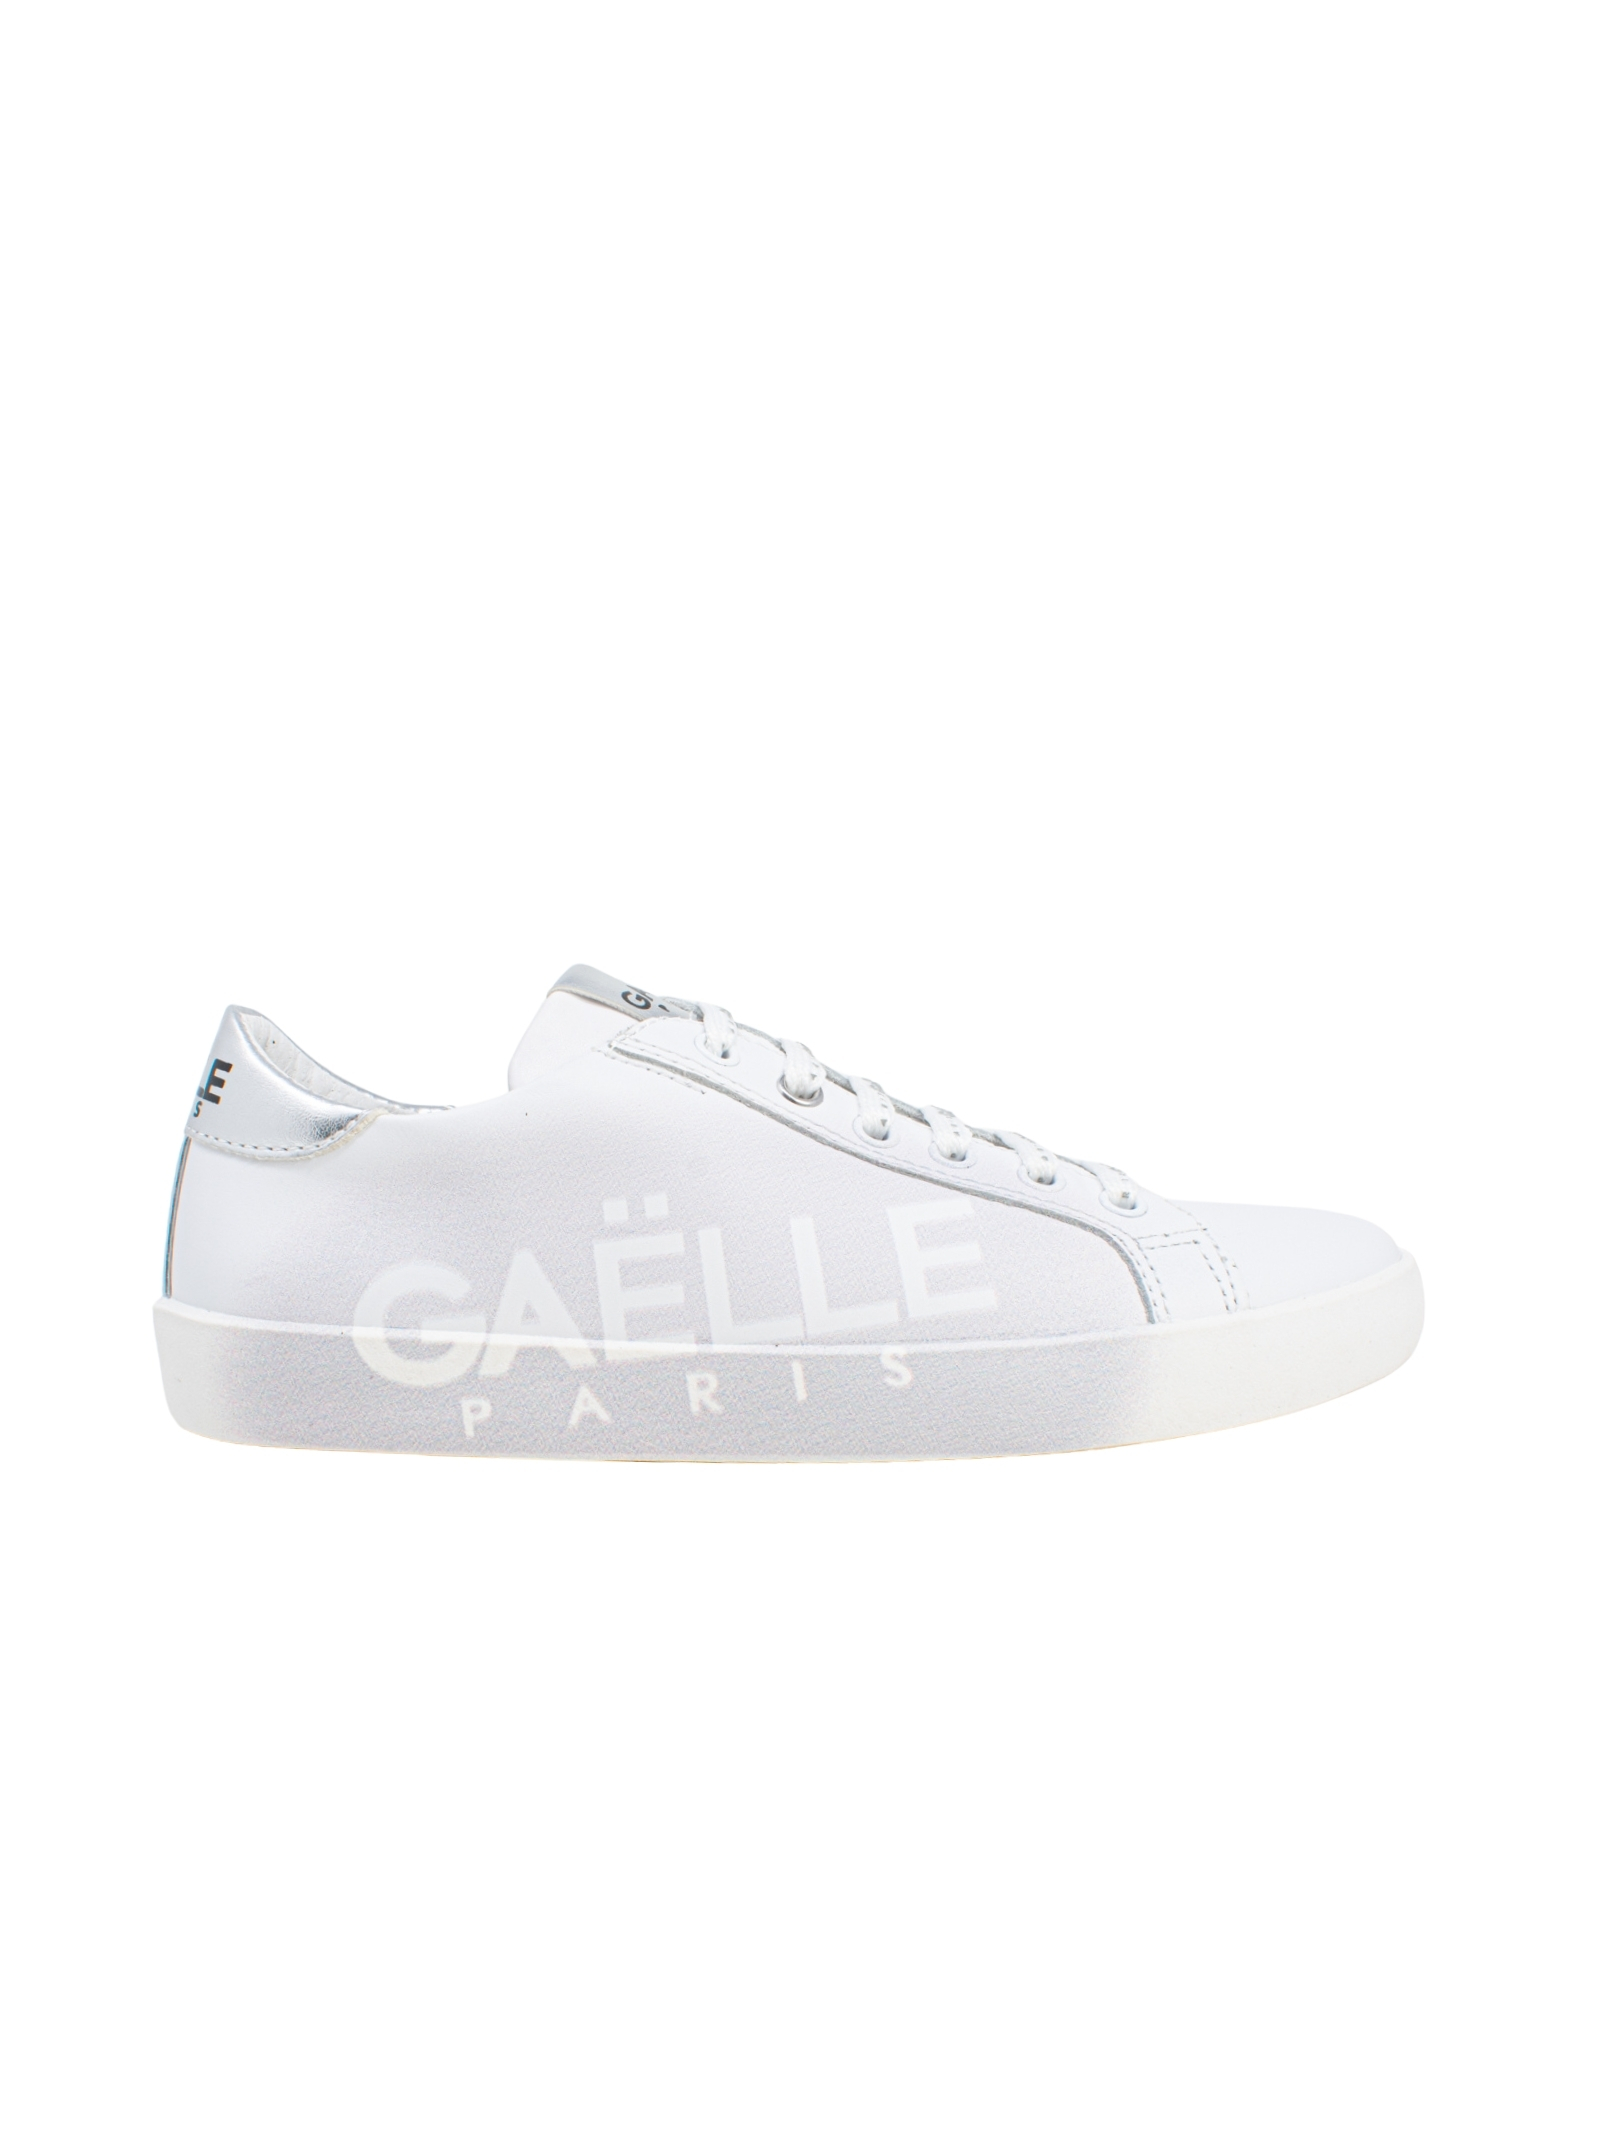 Sneakers Bambina White GAËLLE PARIS KIDS | Sneakers | G721BIANCO